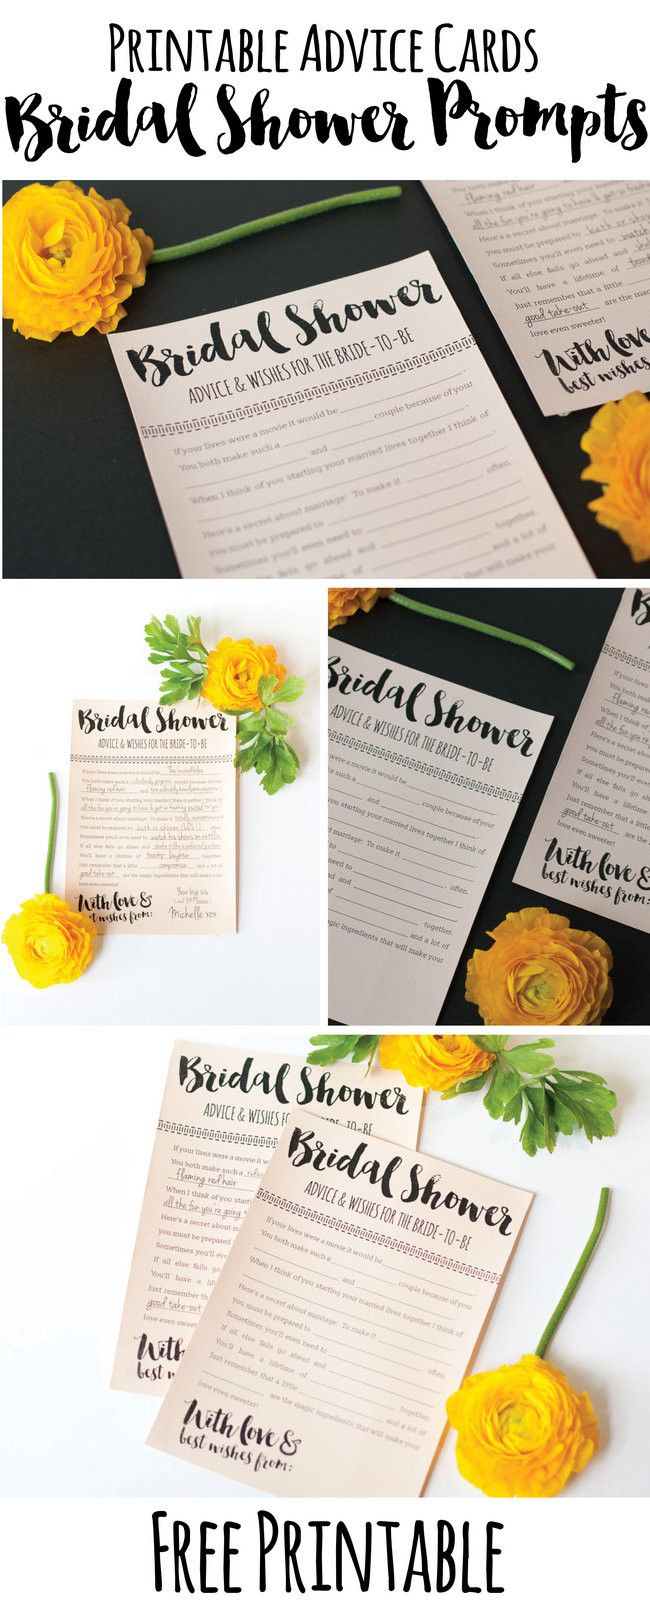 These Printable Bridal Shower Advice Cards are so fun! And it's a free download, yay!: http://www.confettidaydreams.com/bridal-shower-advice-cards-printable/